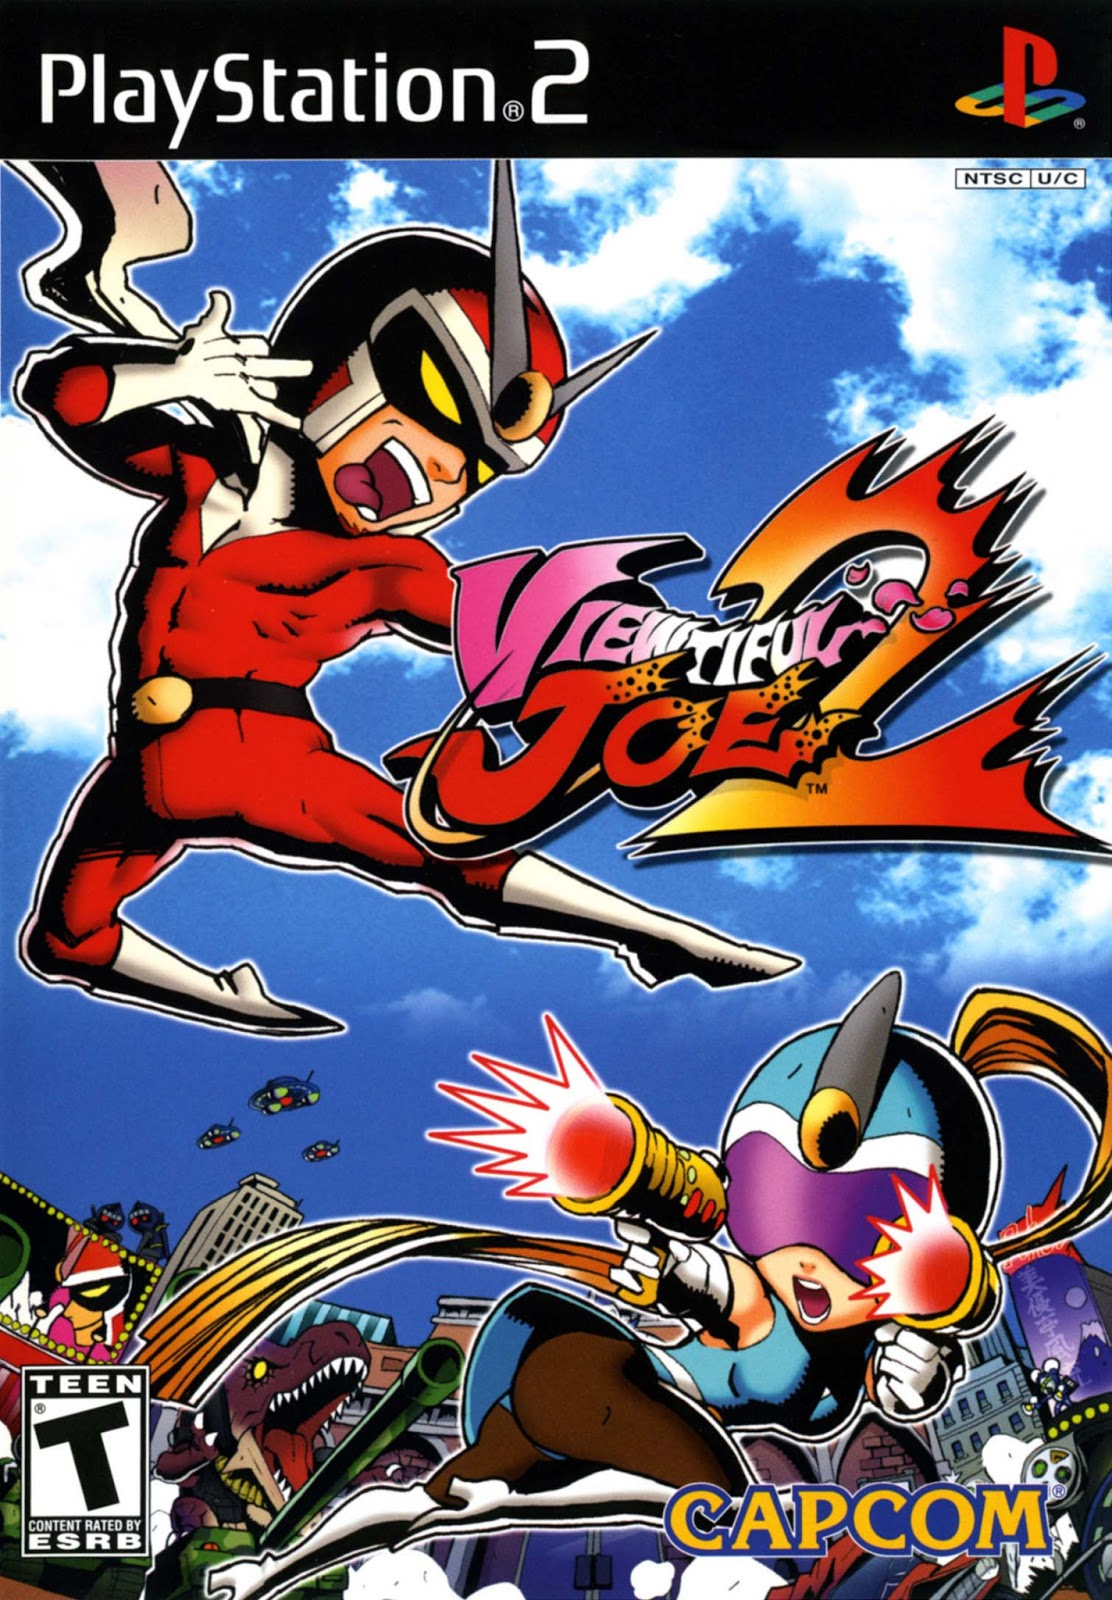 ps2 viewtiful joe 2 hiero s iso games collection